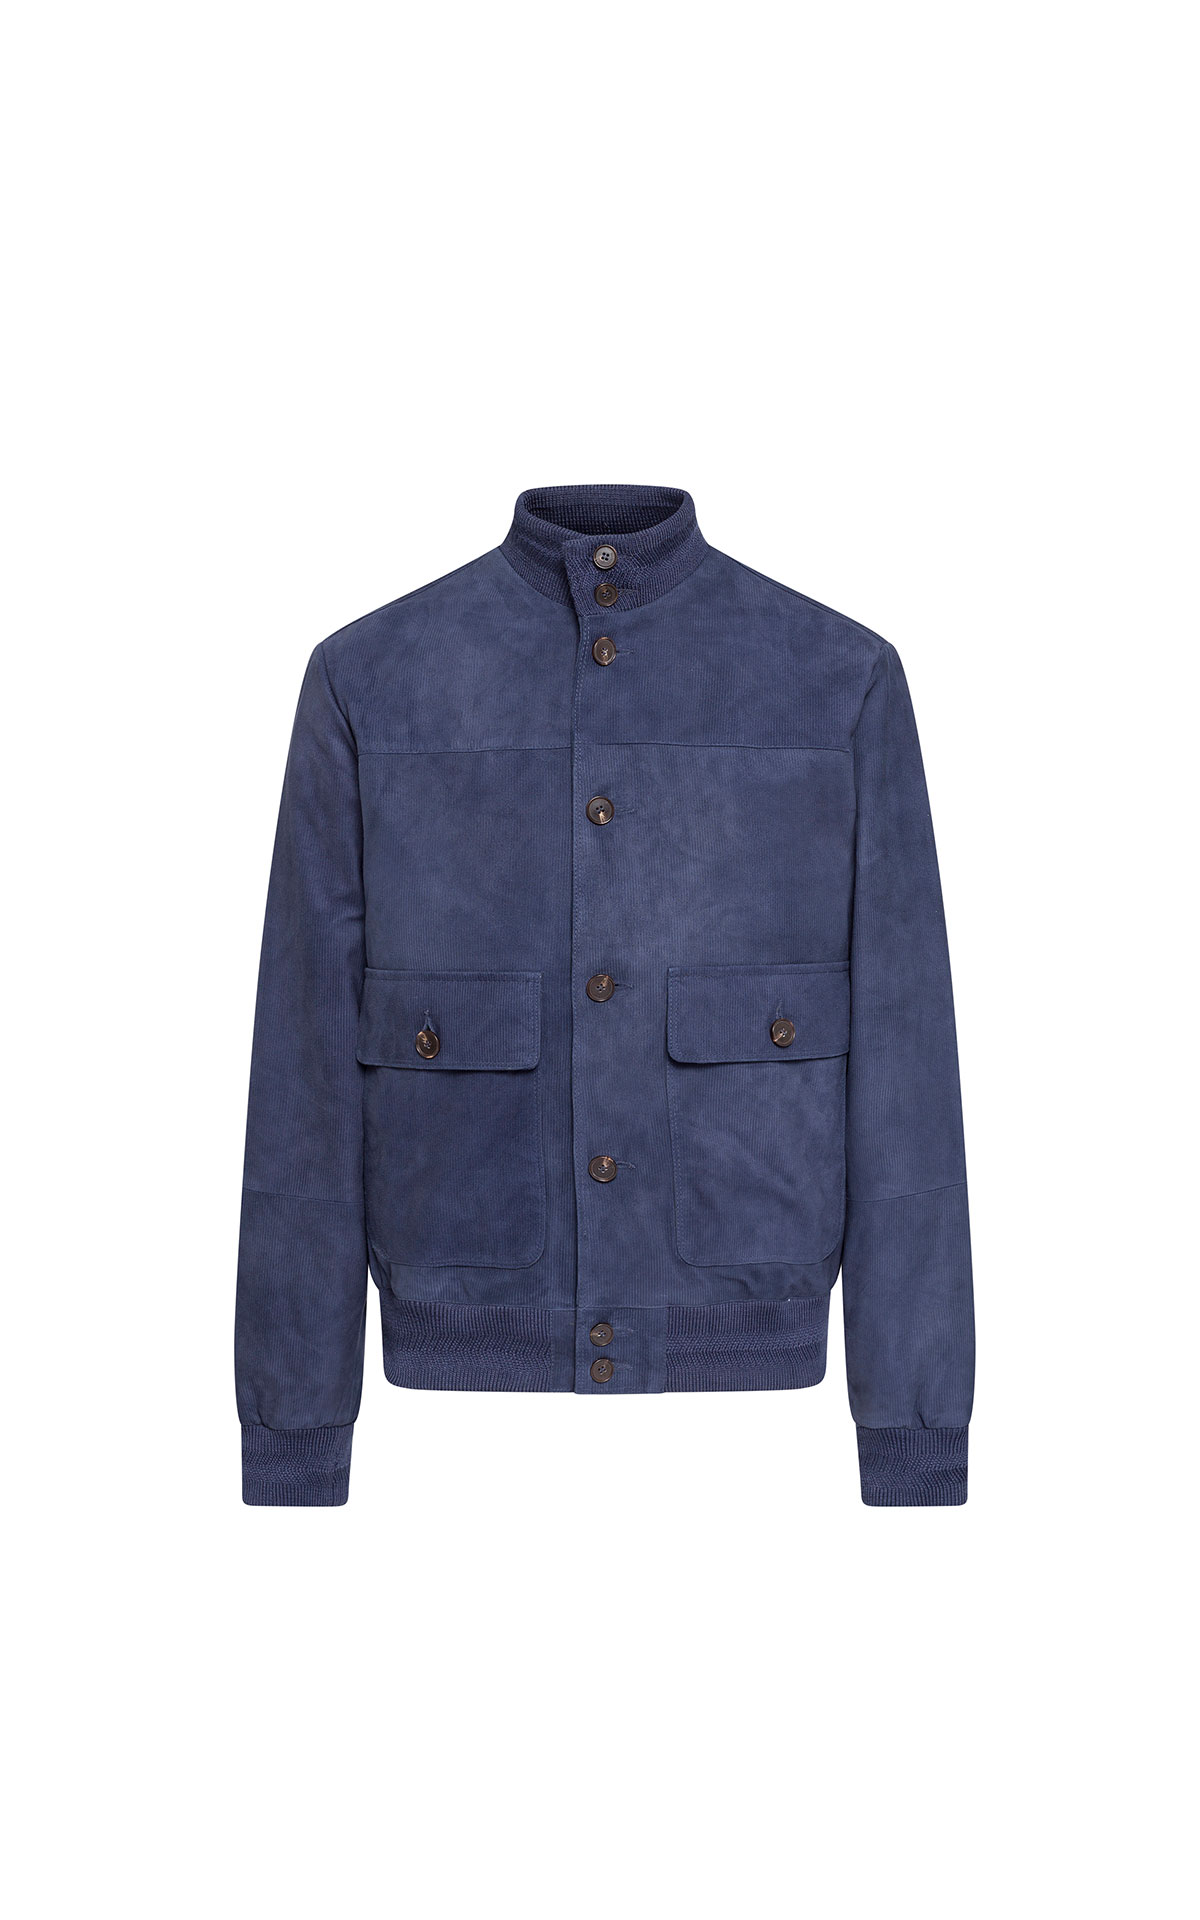 Hackett Men's Suede Cord Blouson at The Bicester Village Shopping Collection